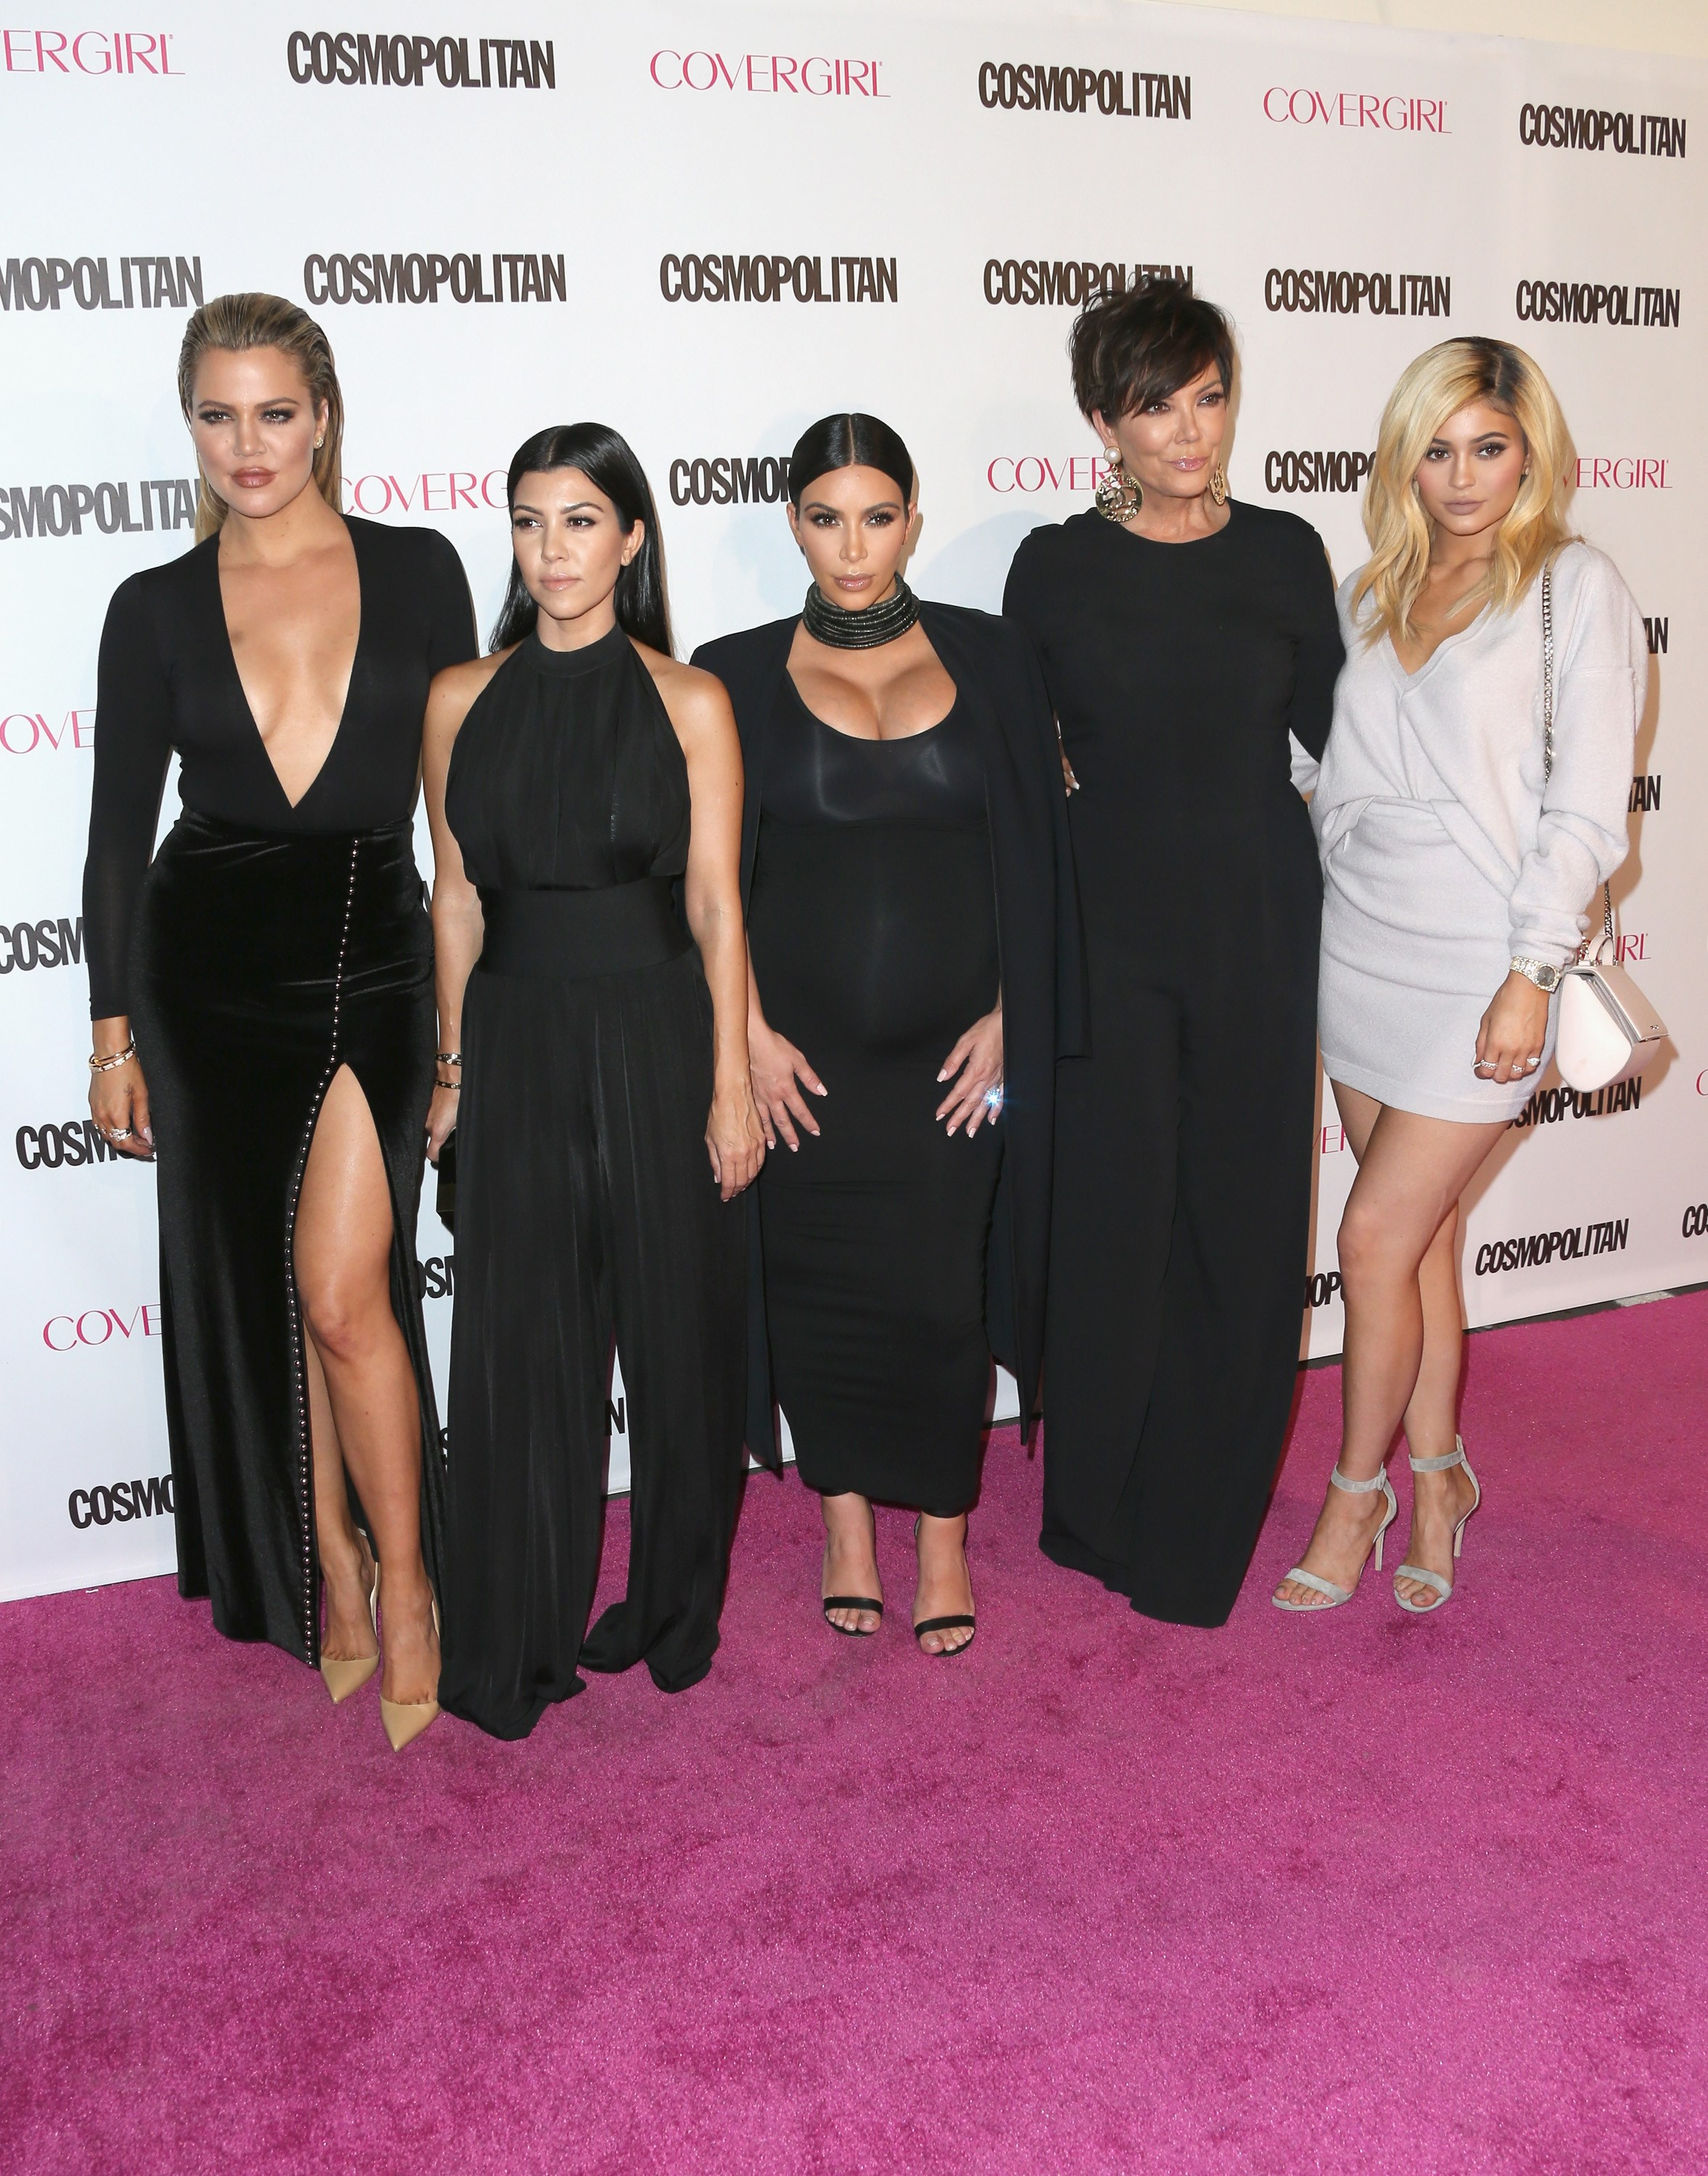 10 jaar Keeping up with the Kardashians